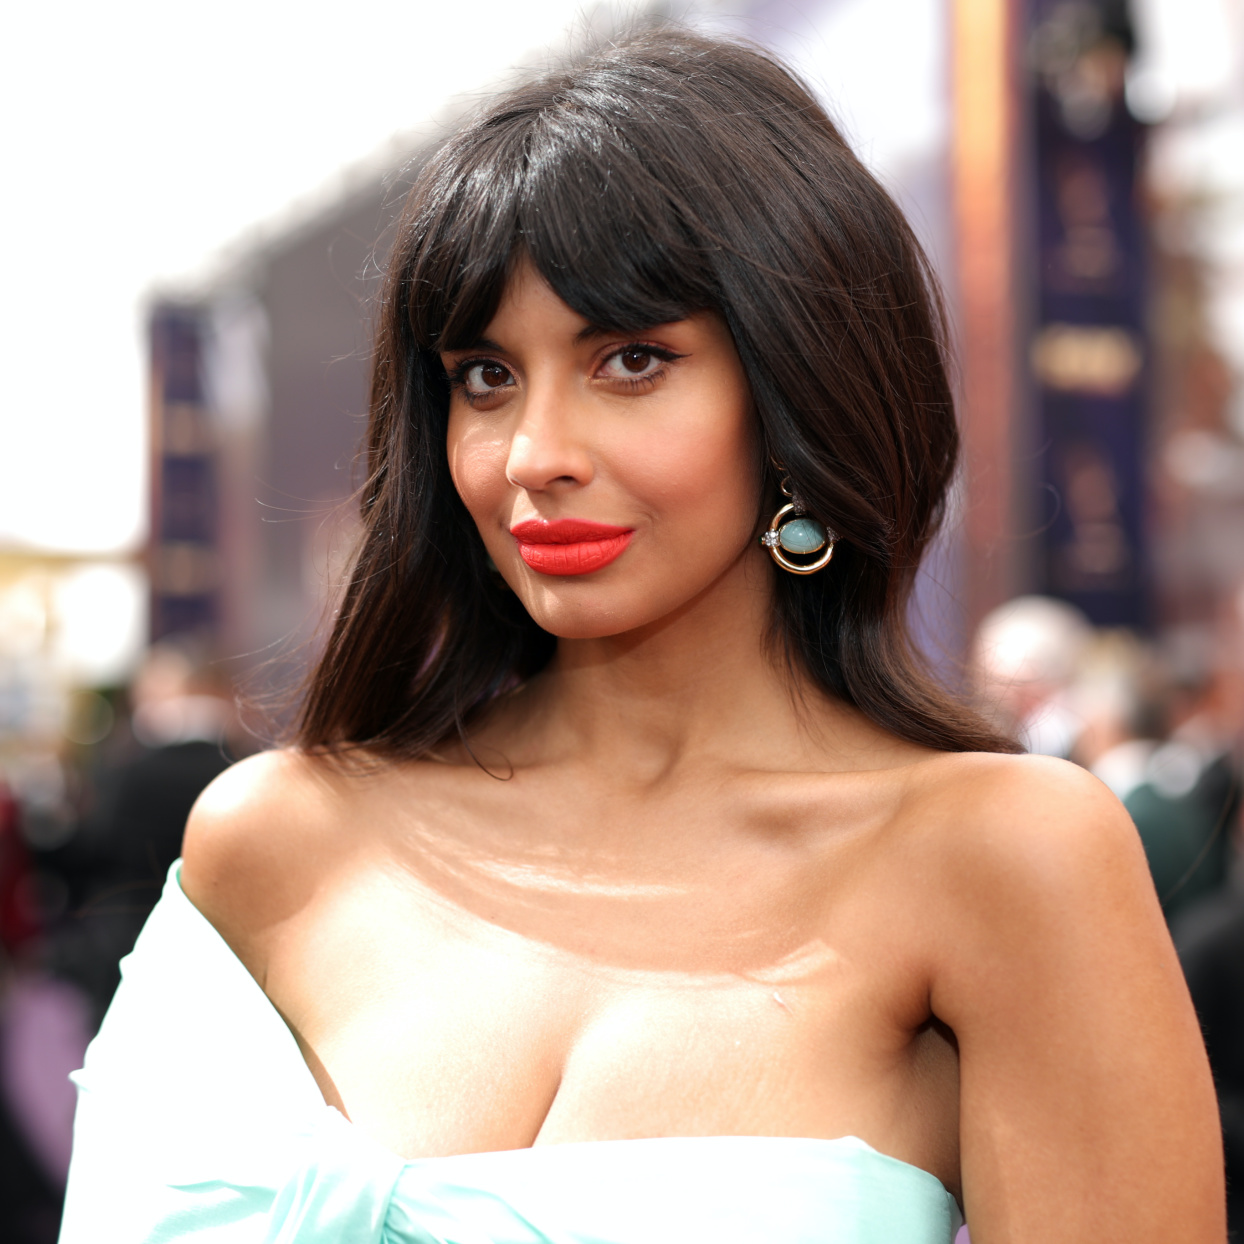 Jameela Jamil Reveals She Once Attempted to Take Her Own Life